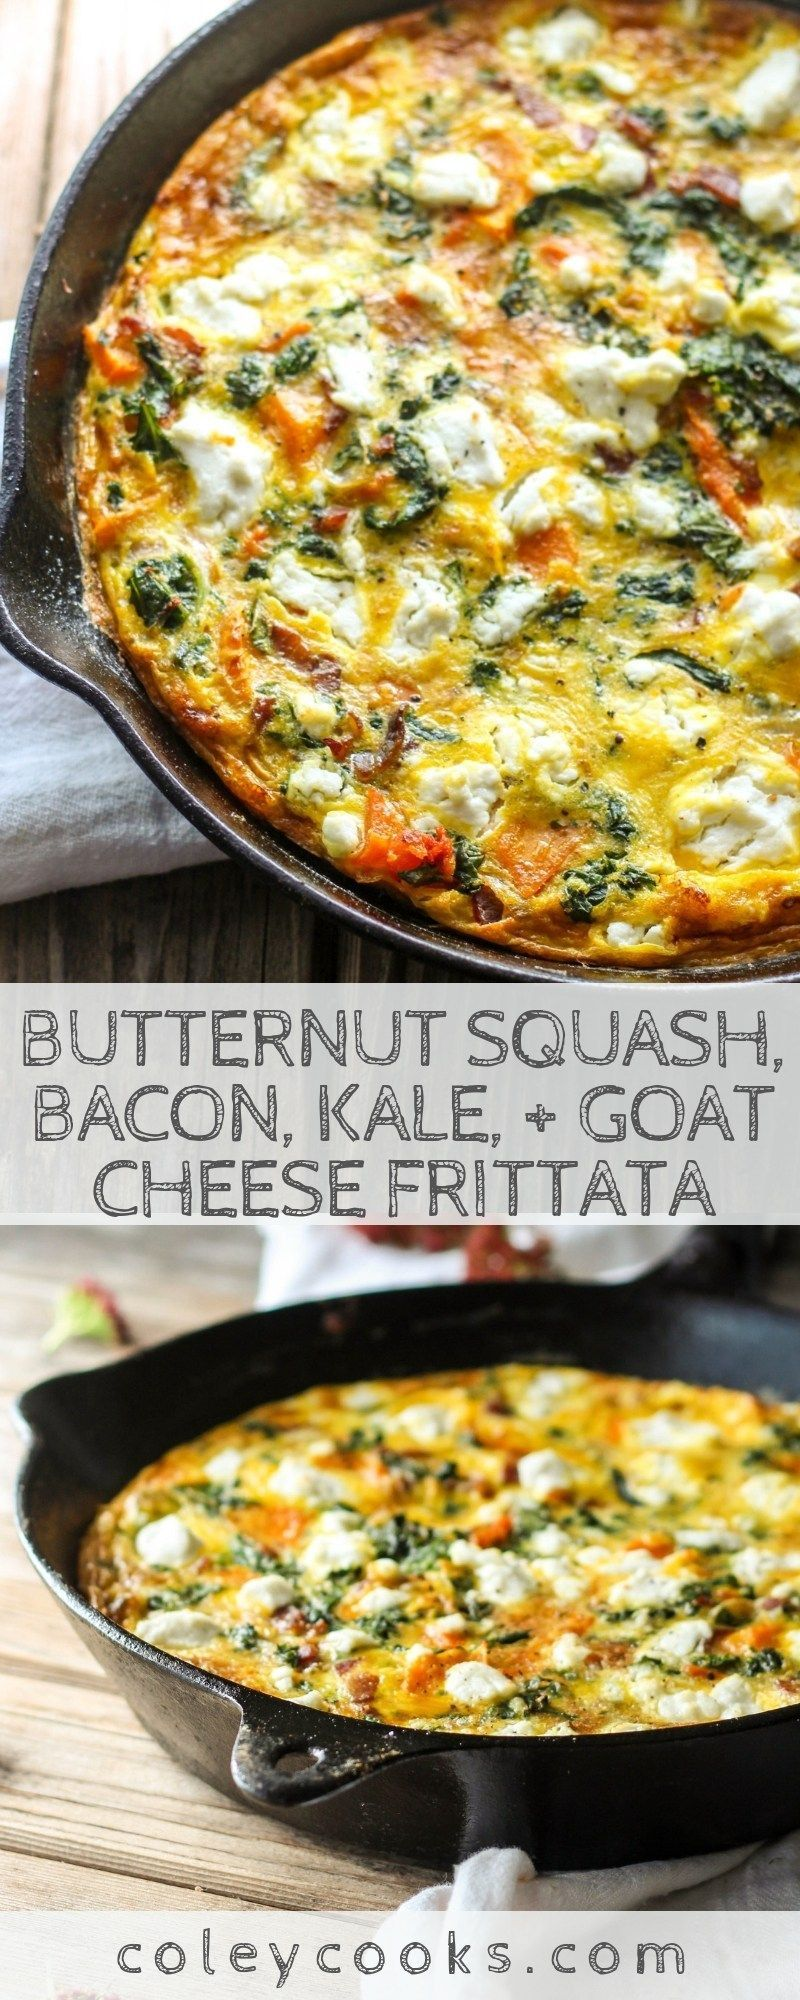 Butternut Squash, Bacon, Kale + Goat Cheese Frittata | Coley Cooks...